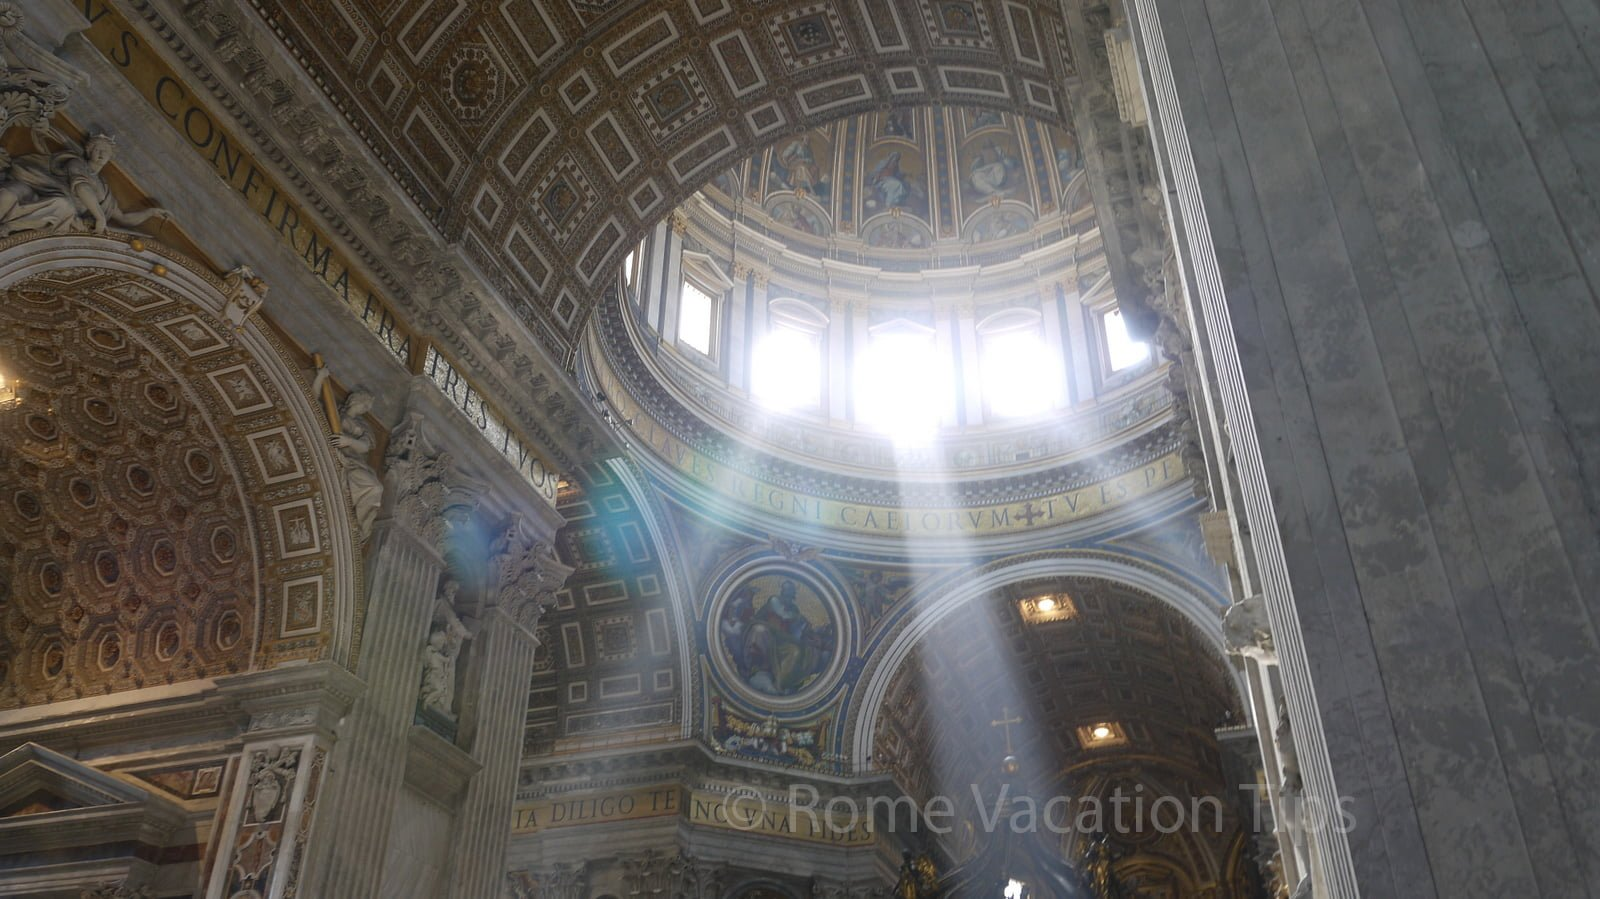 What's the difference between St. Peter's Basilica and the Vatican?